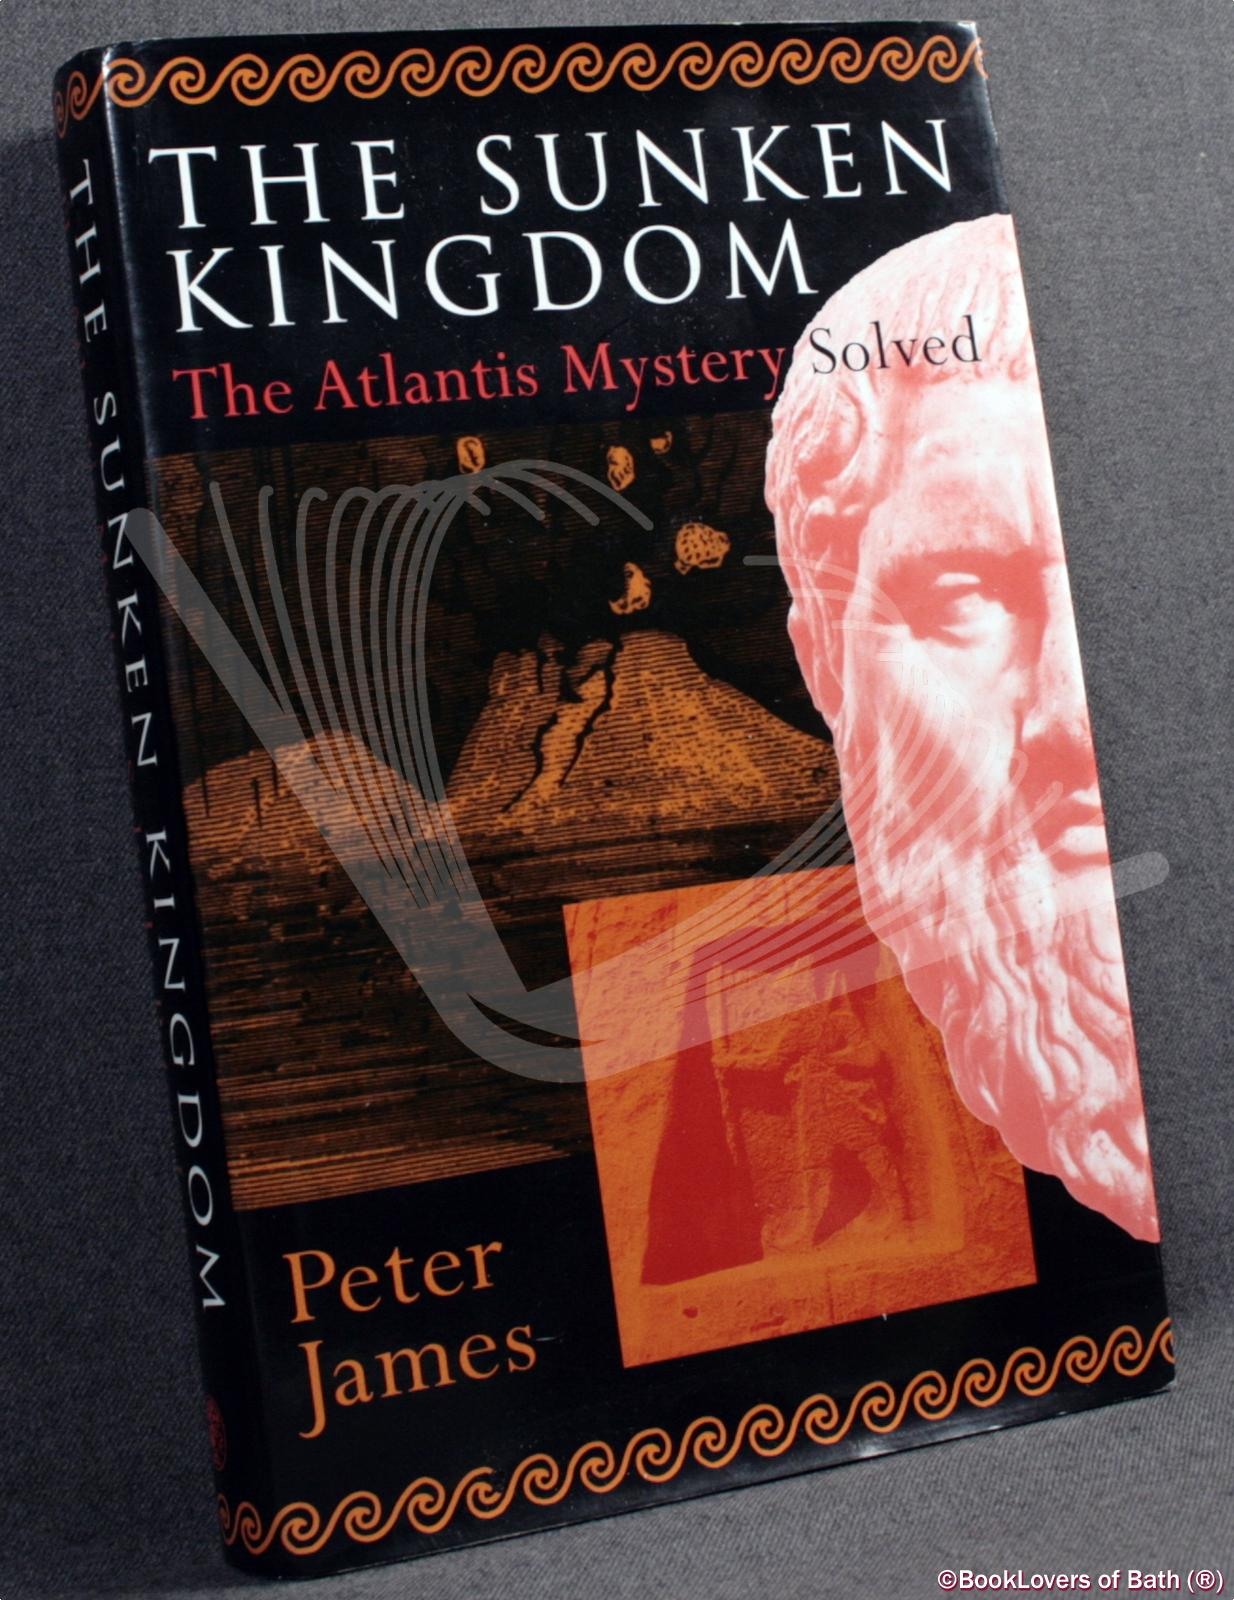 The Sunken Kingdom: The Atlantis Mystery Solved - Peter James